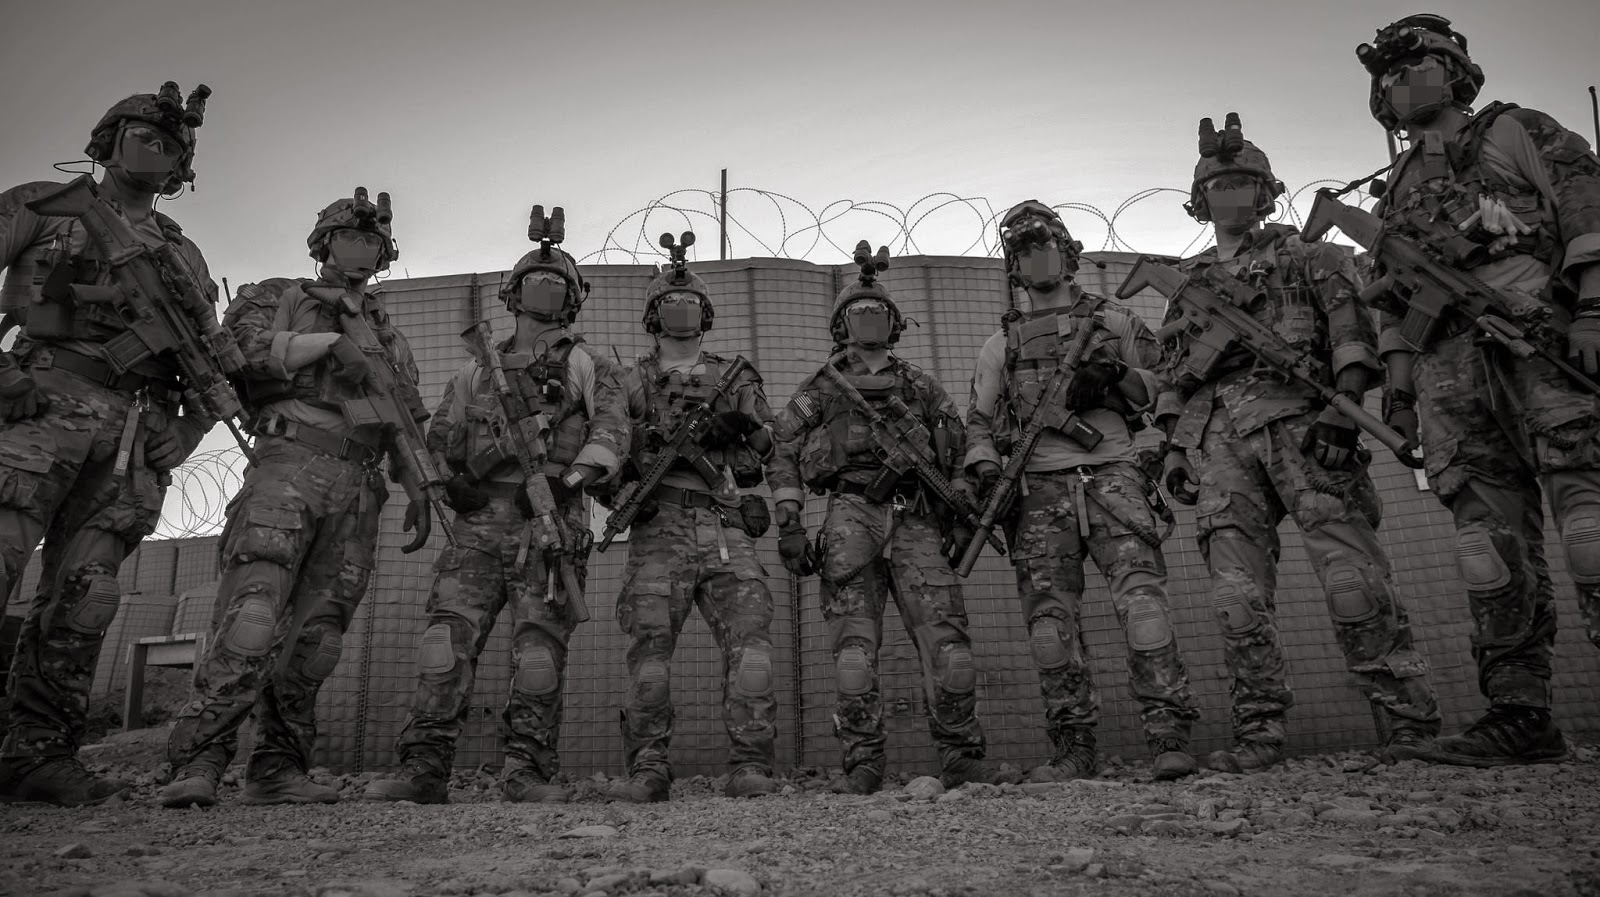 Images of Us Army Rangers